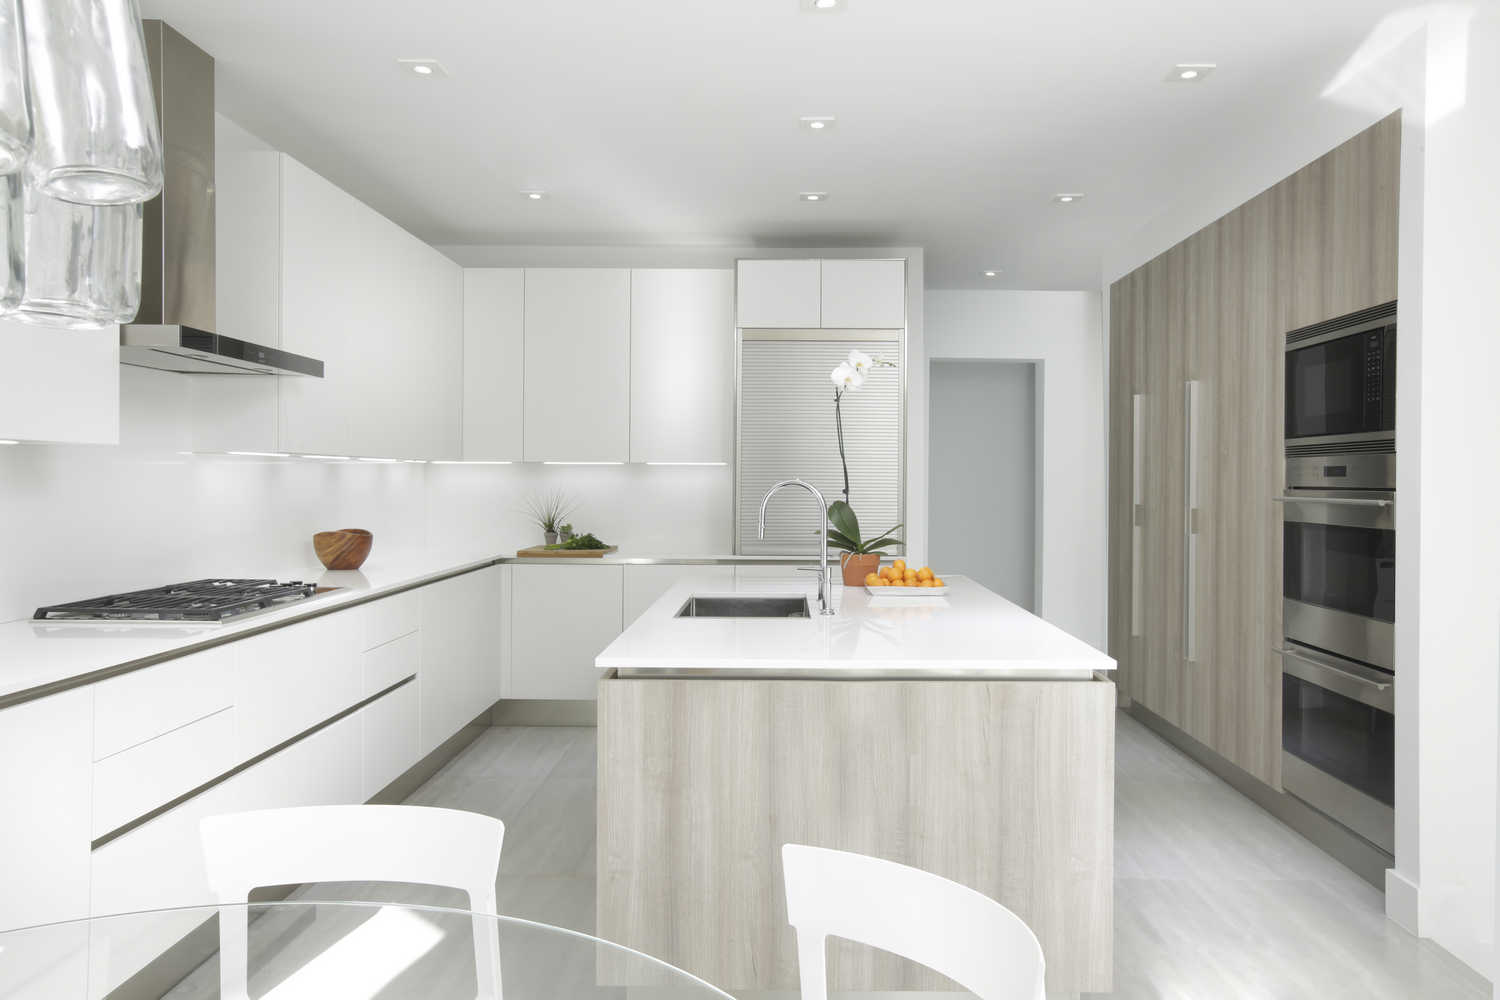 Kitchens residential interior design from dkor interiors for Interior design ausbildung